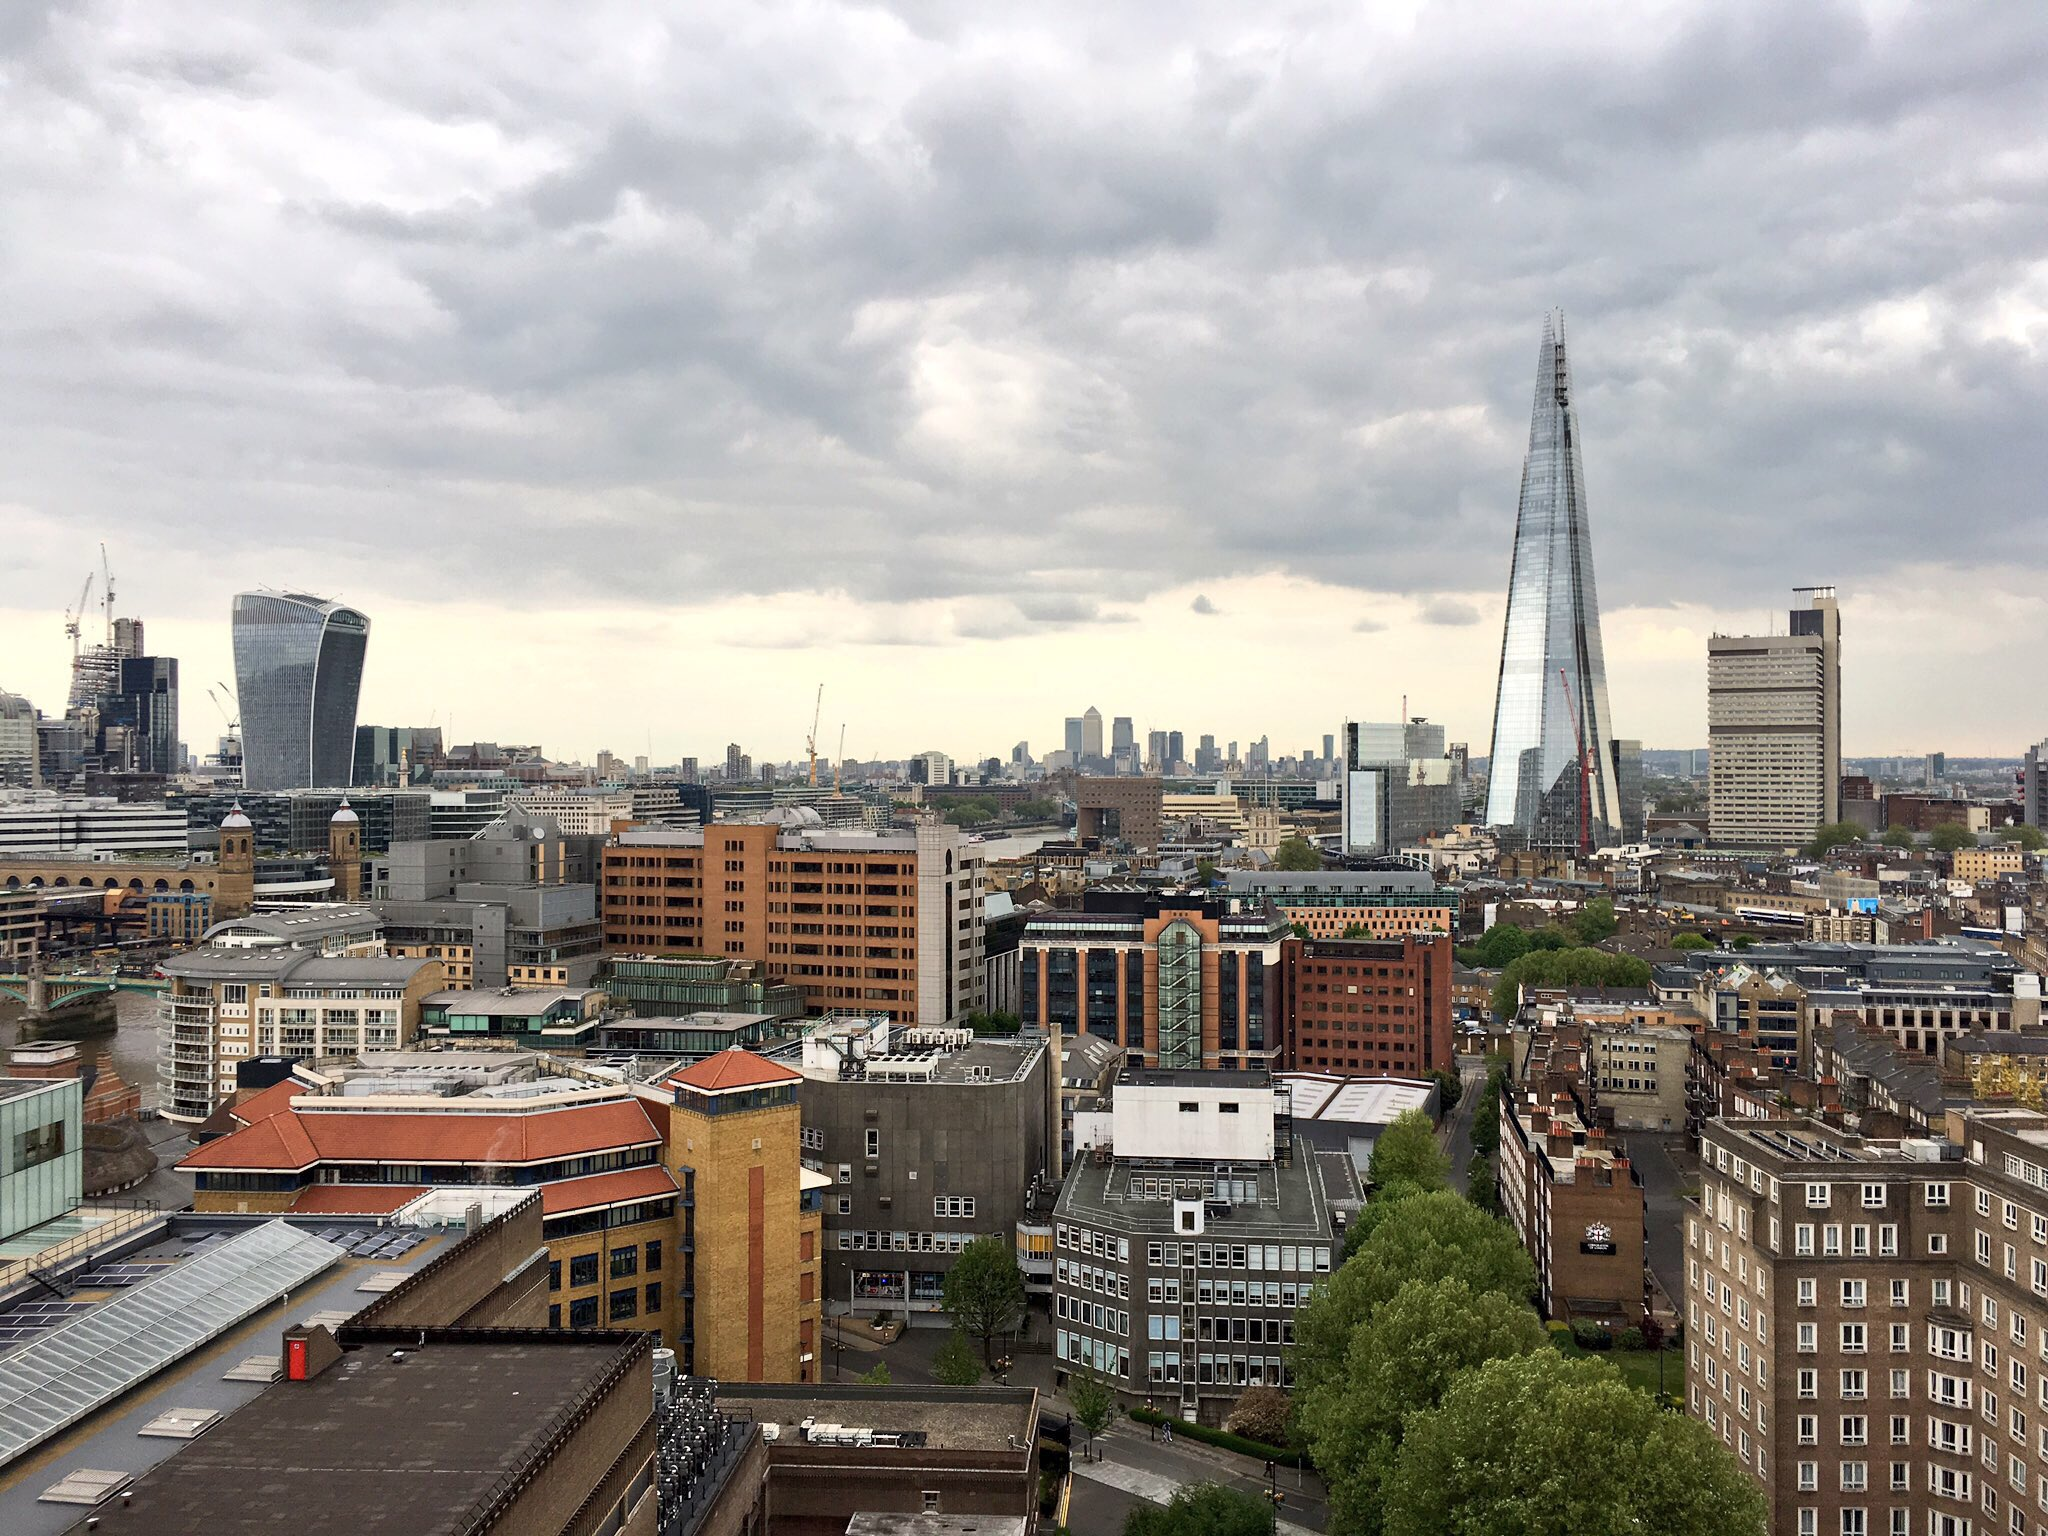 Looking out from the reclaimed industrial Tate Modern to The Shard, I feel like I understand JG Ballard better. https://t.co/3Wvsy4Need